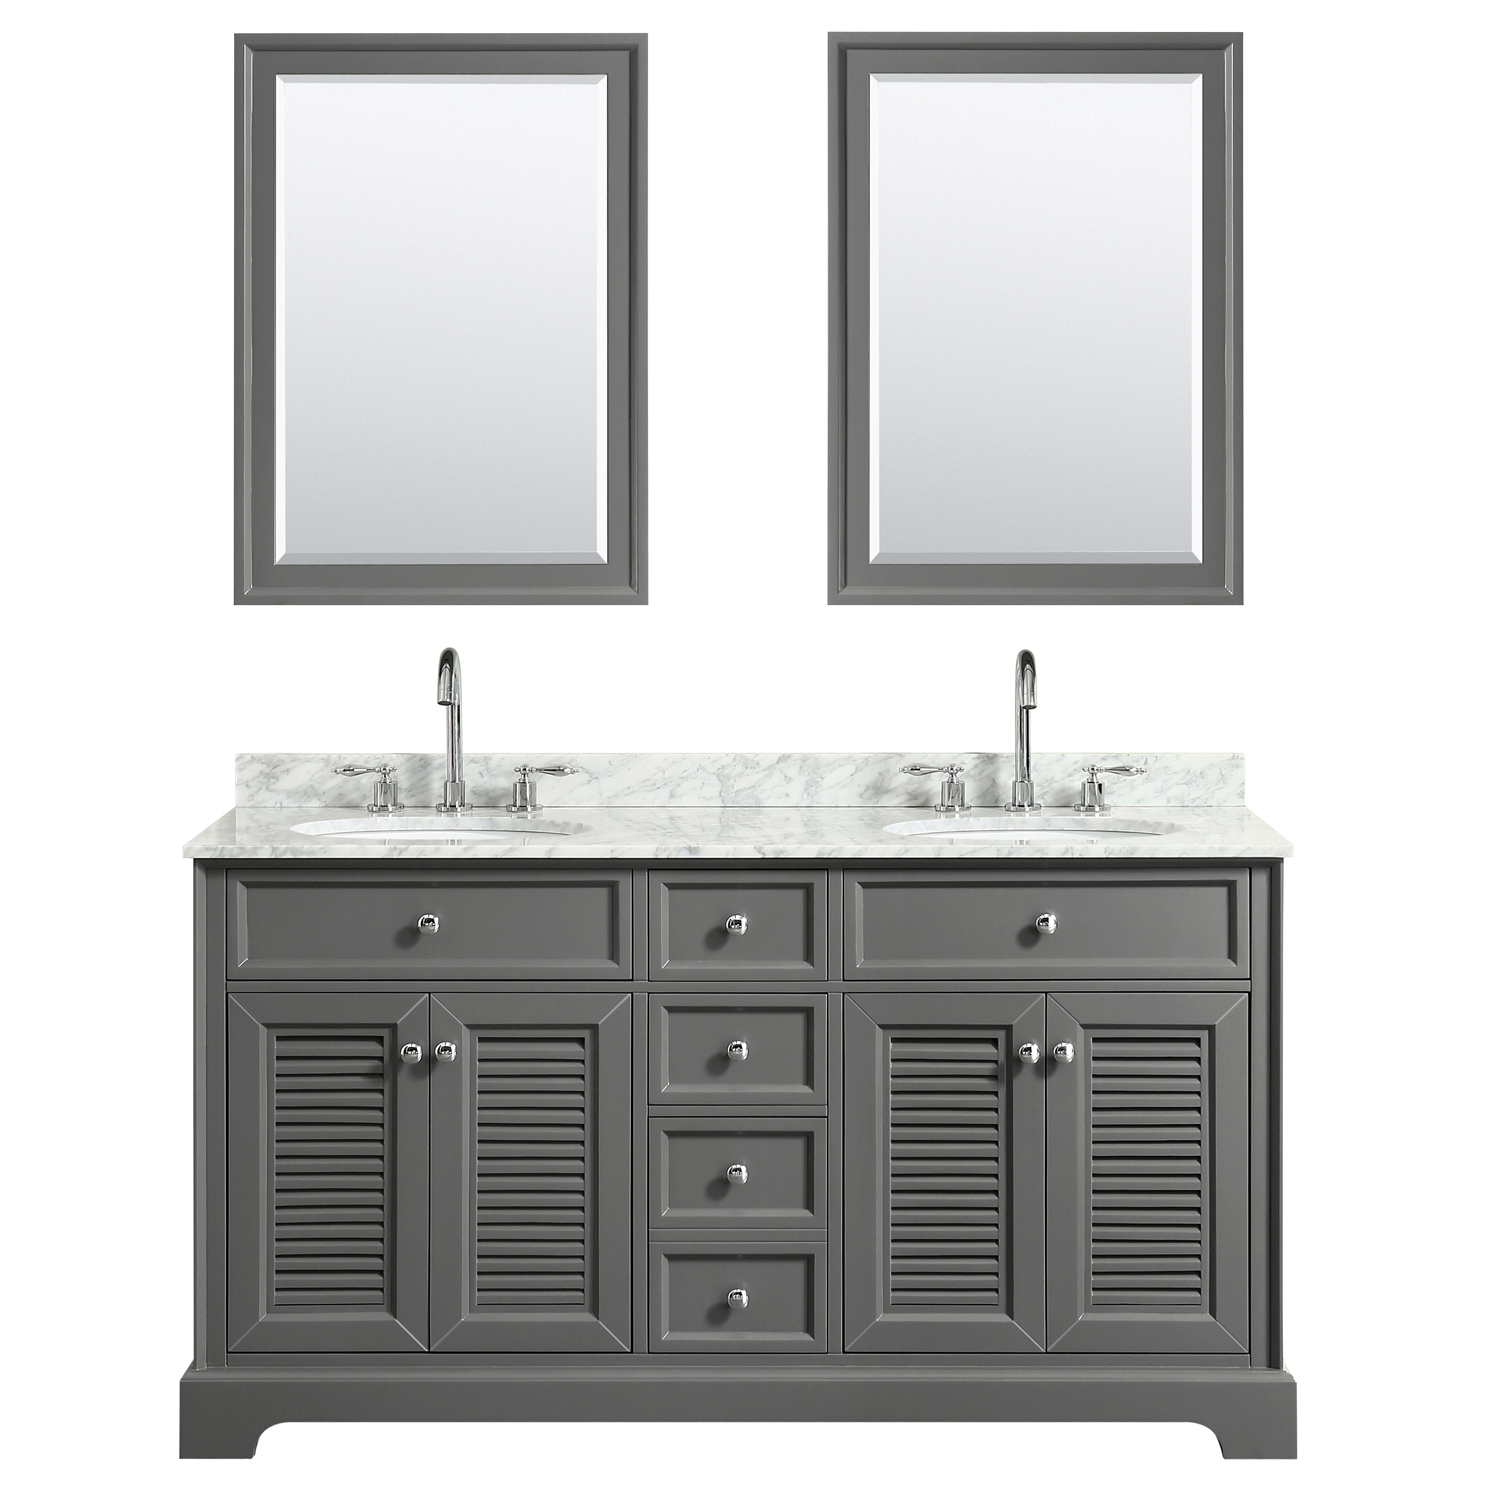 60 Double Bathroom Vanity In White Carrara Marble Countertop With Undermount Sinks Medicine Cabinet Mirror And Color Options